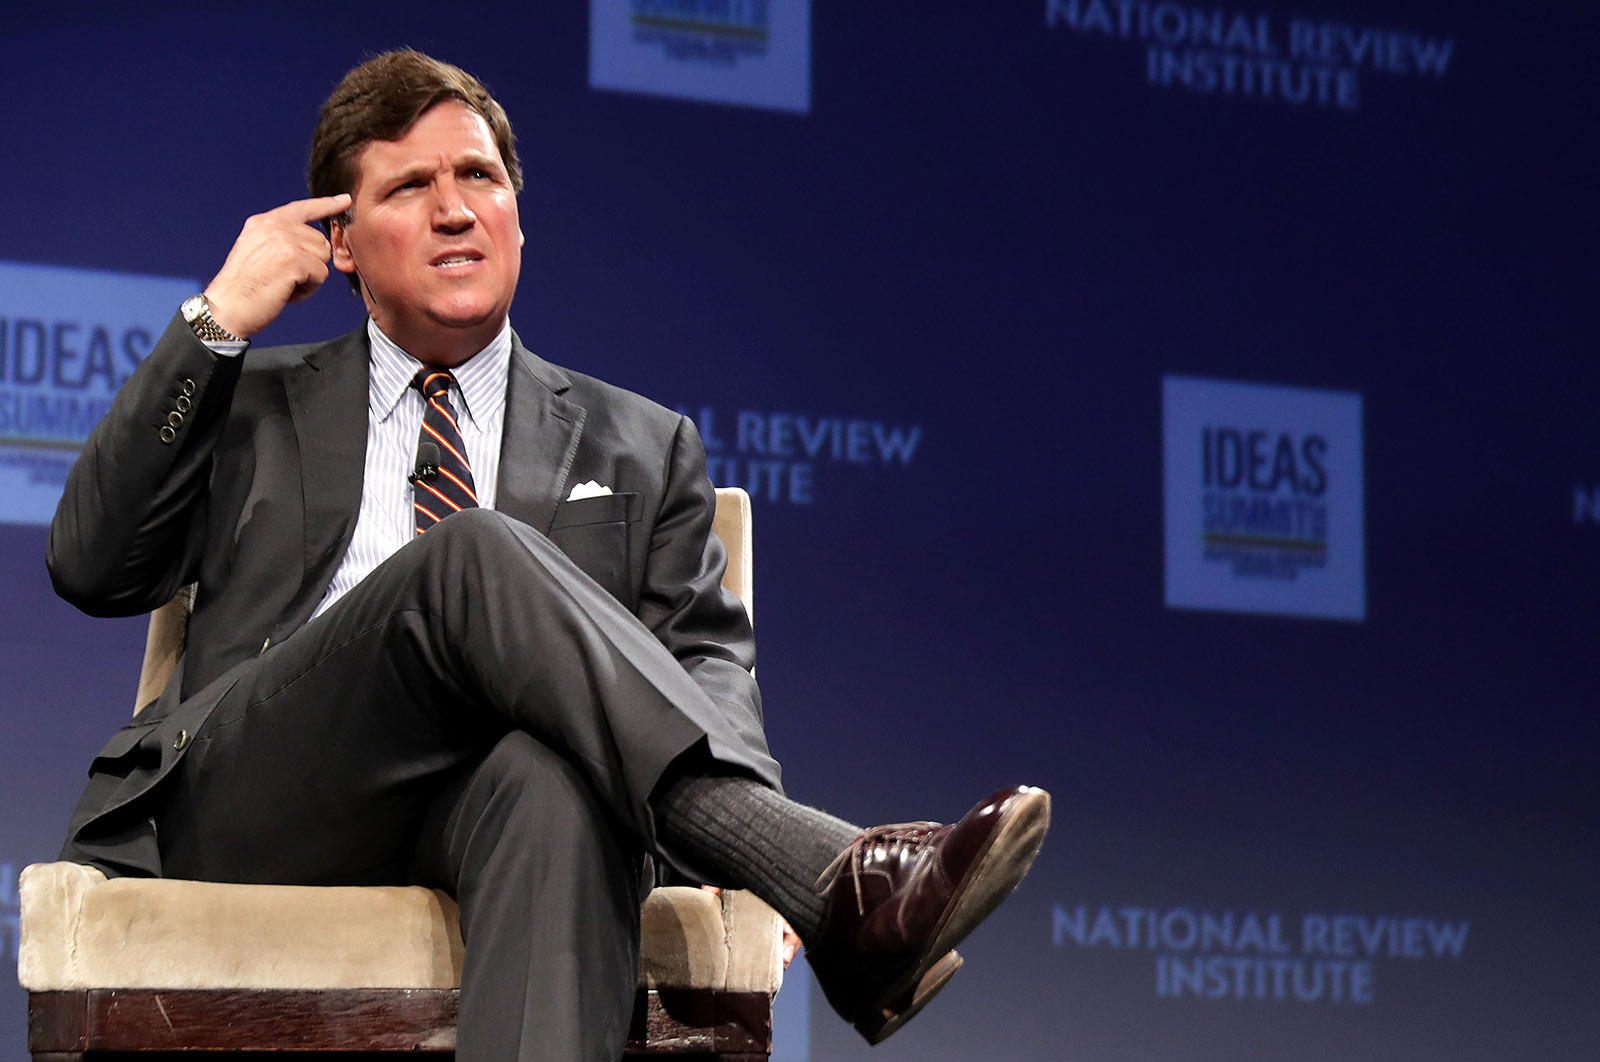 """Fox News host Tucker Carlson discusses """"Populism and the Right"""" at a National Review Institute conference, Washington, D.C., March 29, 2019"""